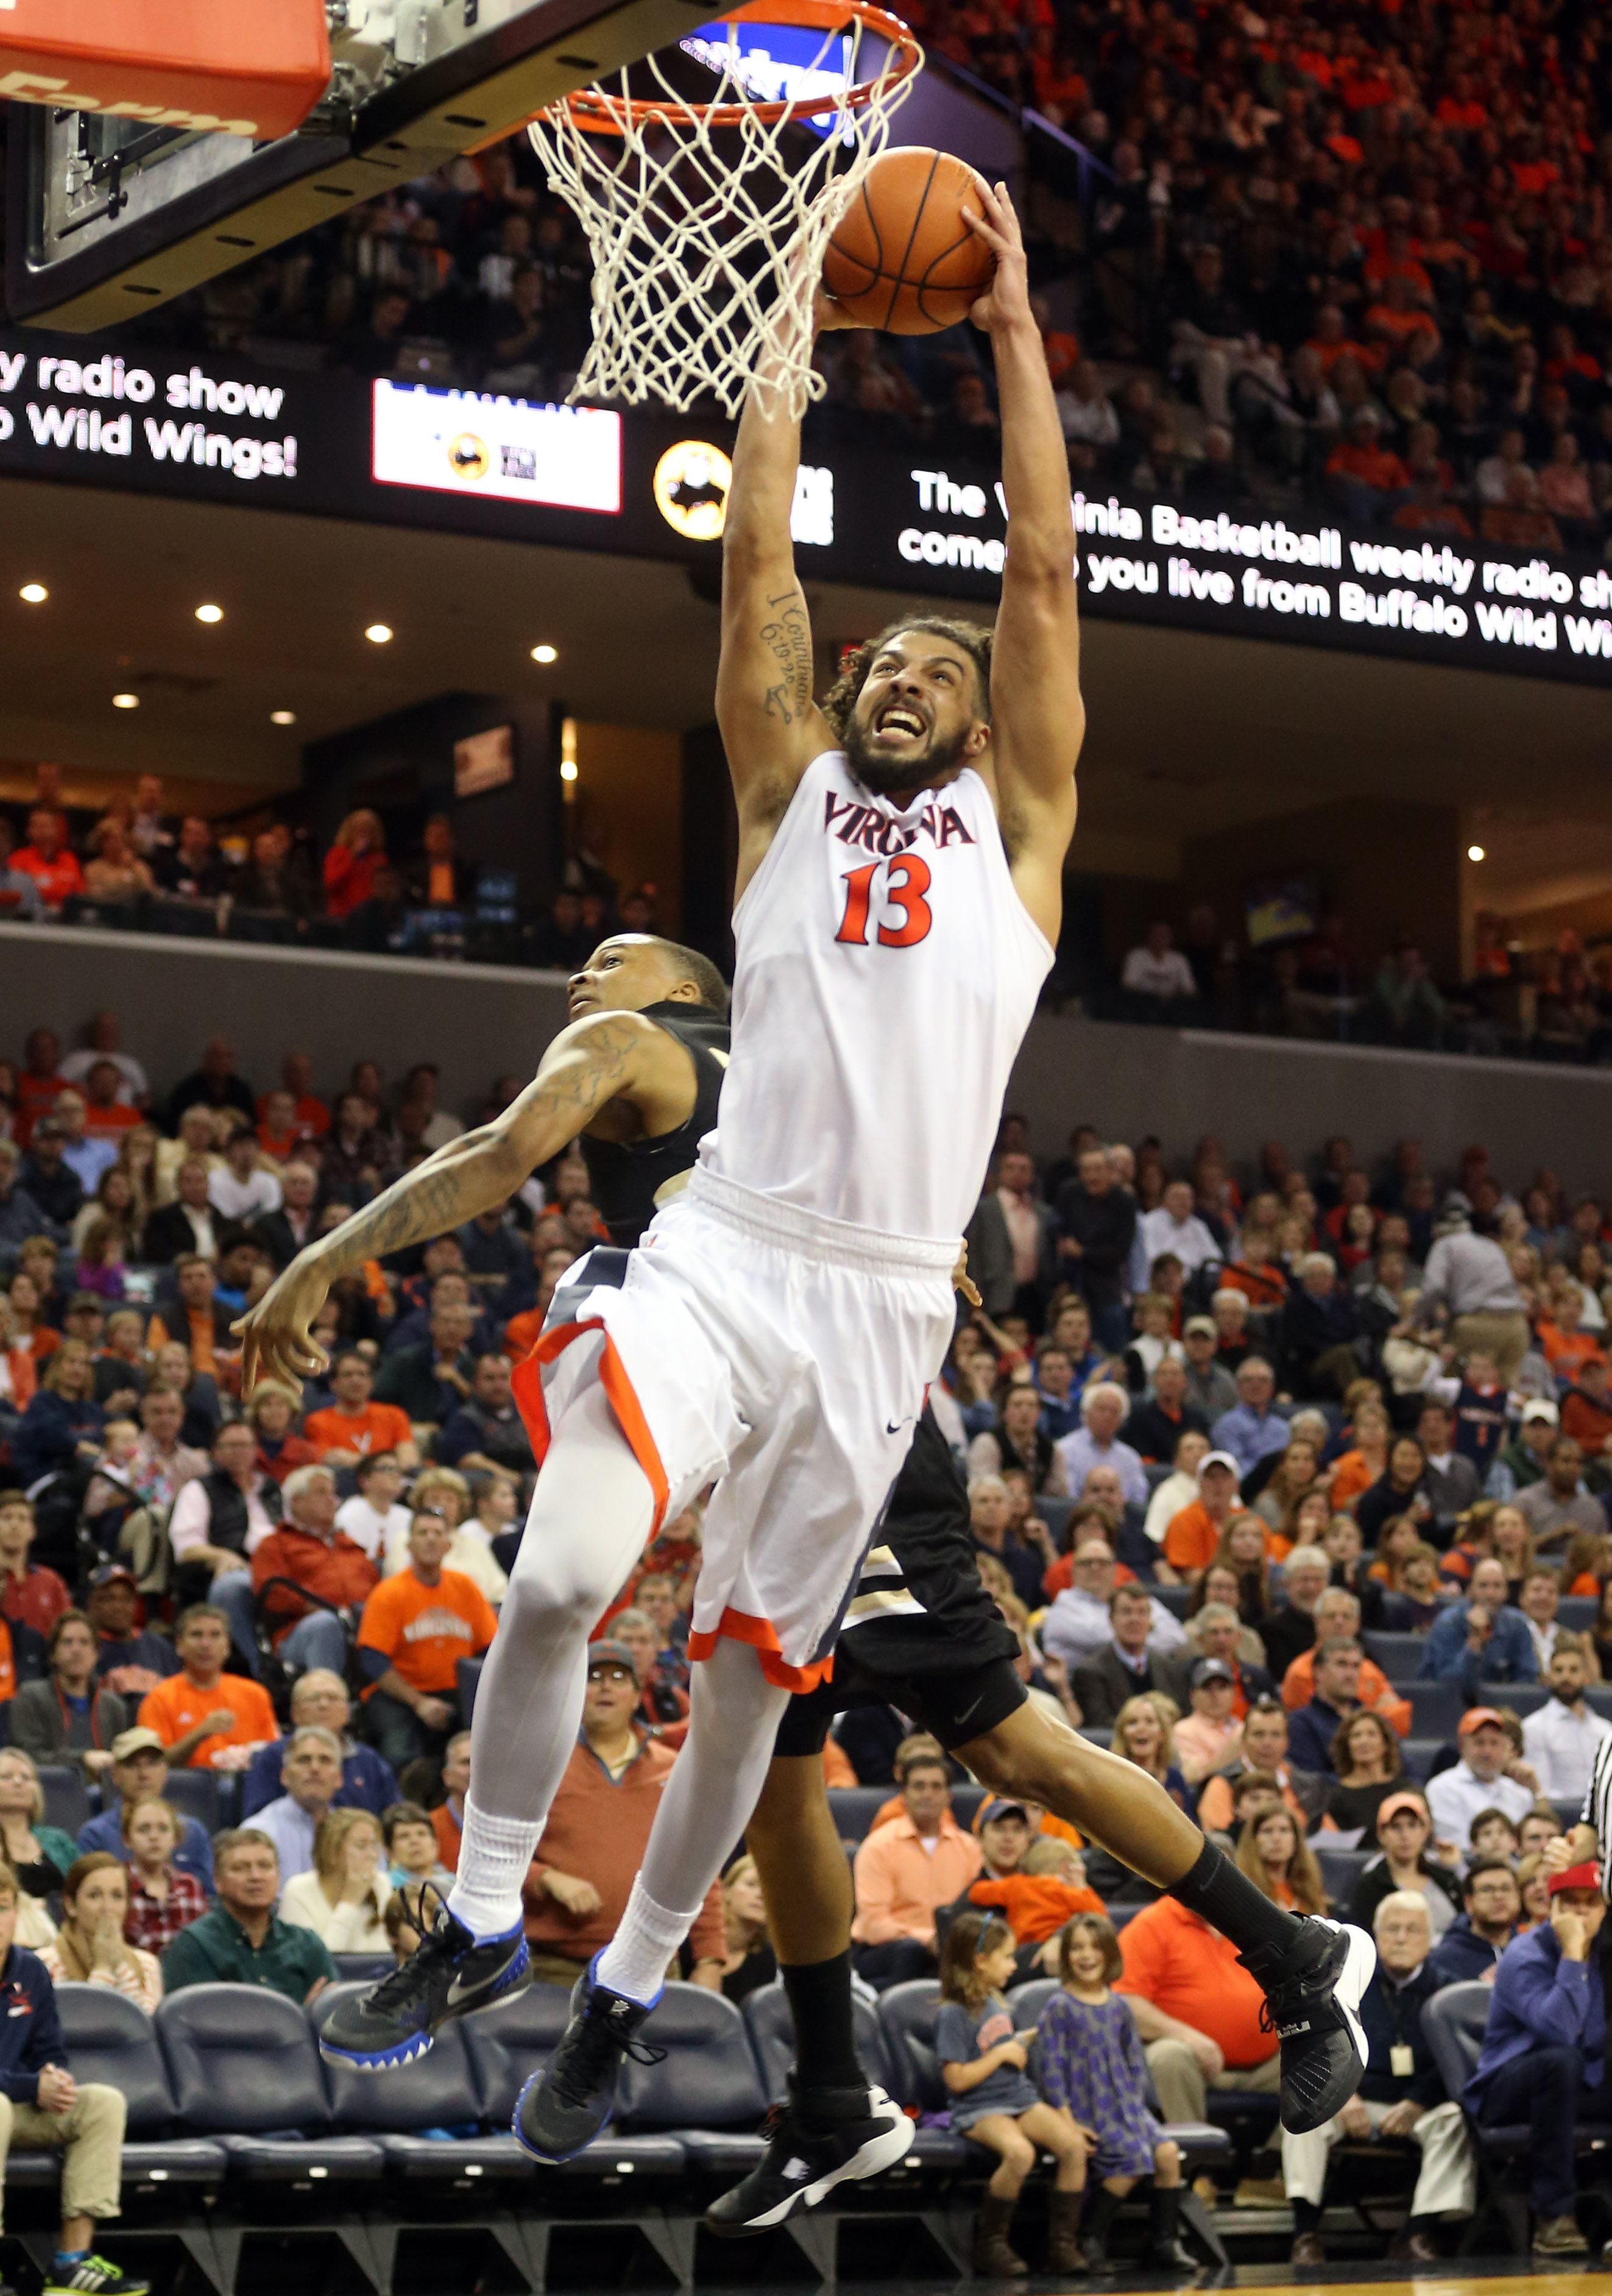 Virginia forward Anthony Gill (13) dunks in front of Oakland guard Sherron Dorsey-Walker (30) during an NCAA basketball game Wednesday Dec. 30, 2015, in Charlottesville, Va. Virginia won 71-58. (AP Photo/Andrew Shurtleff)